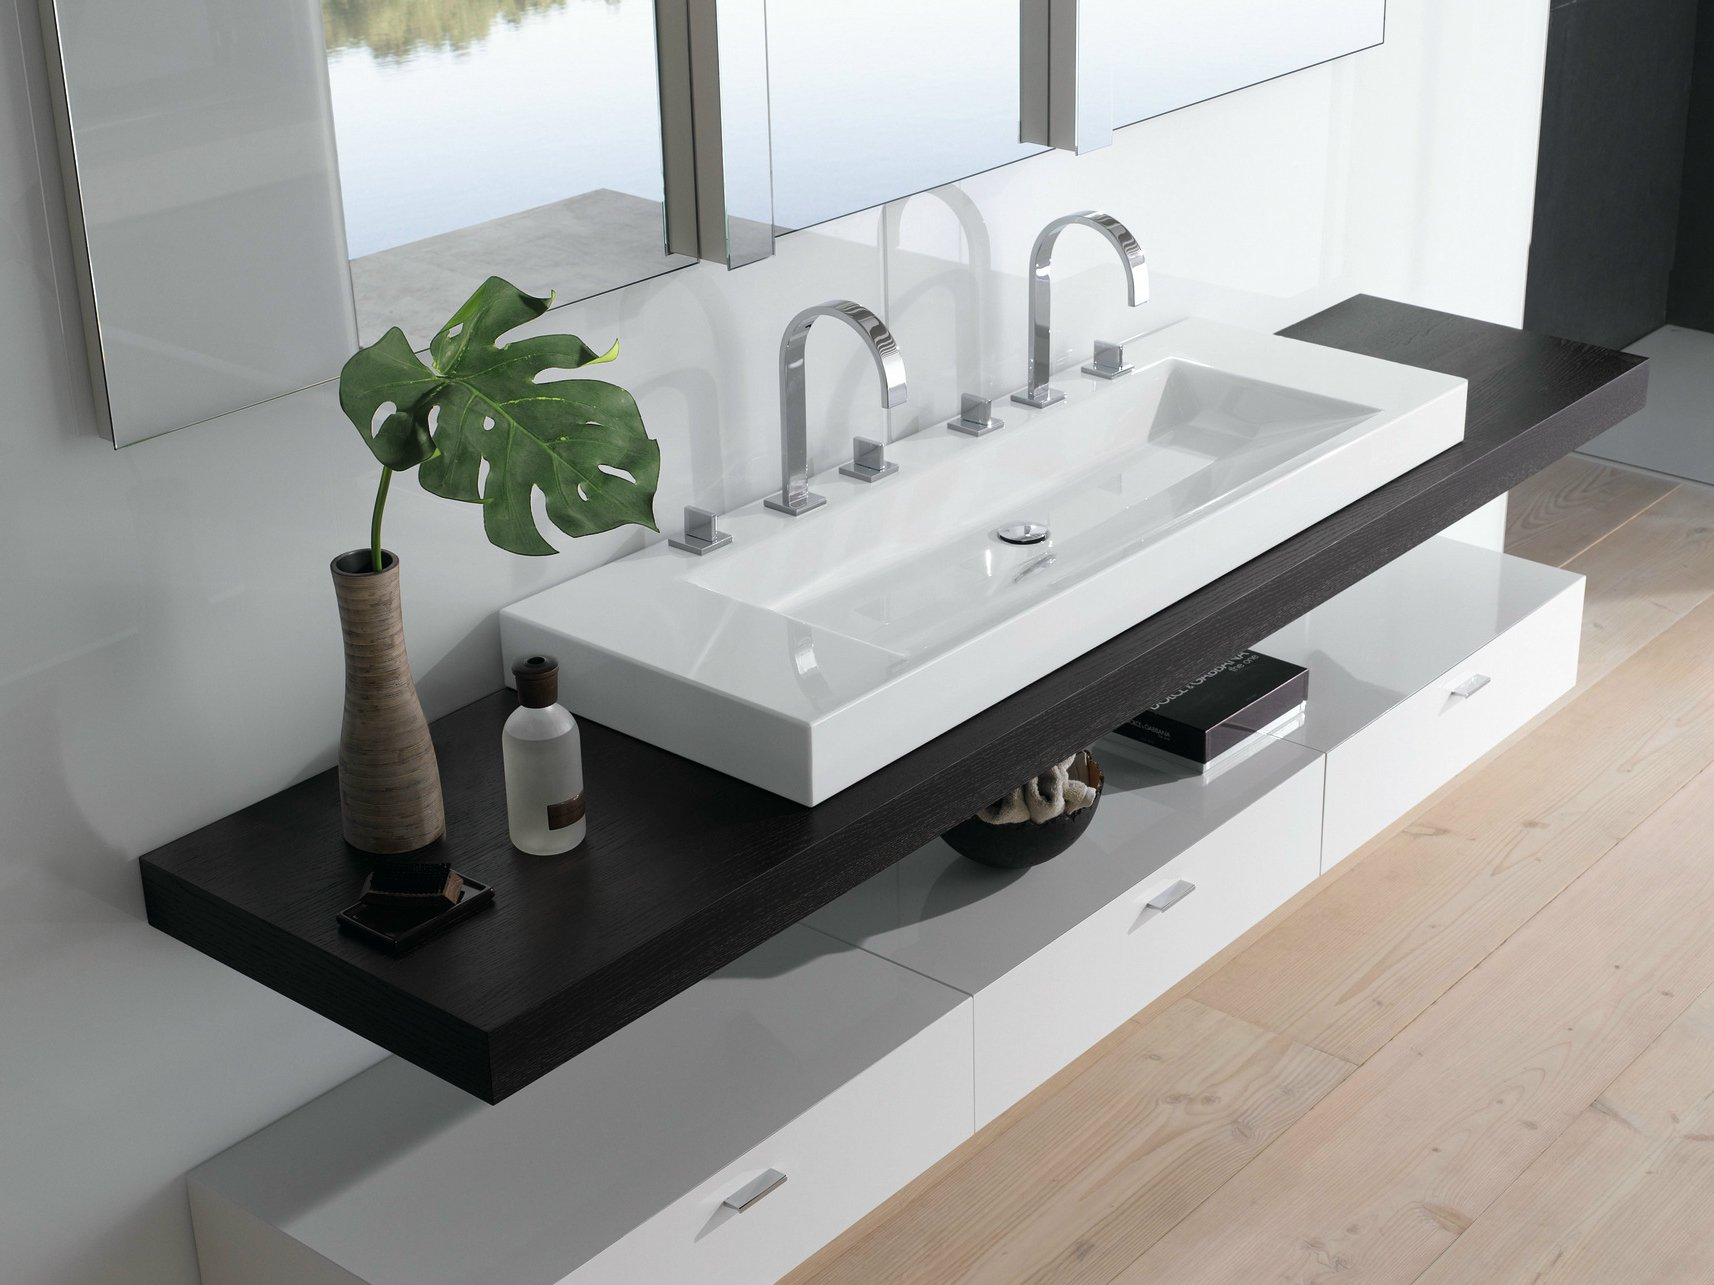 Betteaqua lavabo double by bette design schmiddem design - Lavandini rettangolari bagno ...